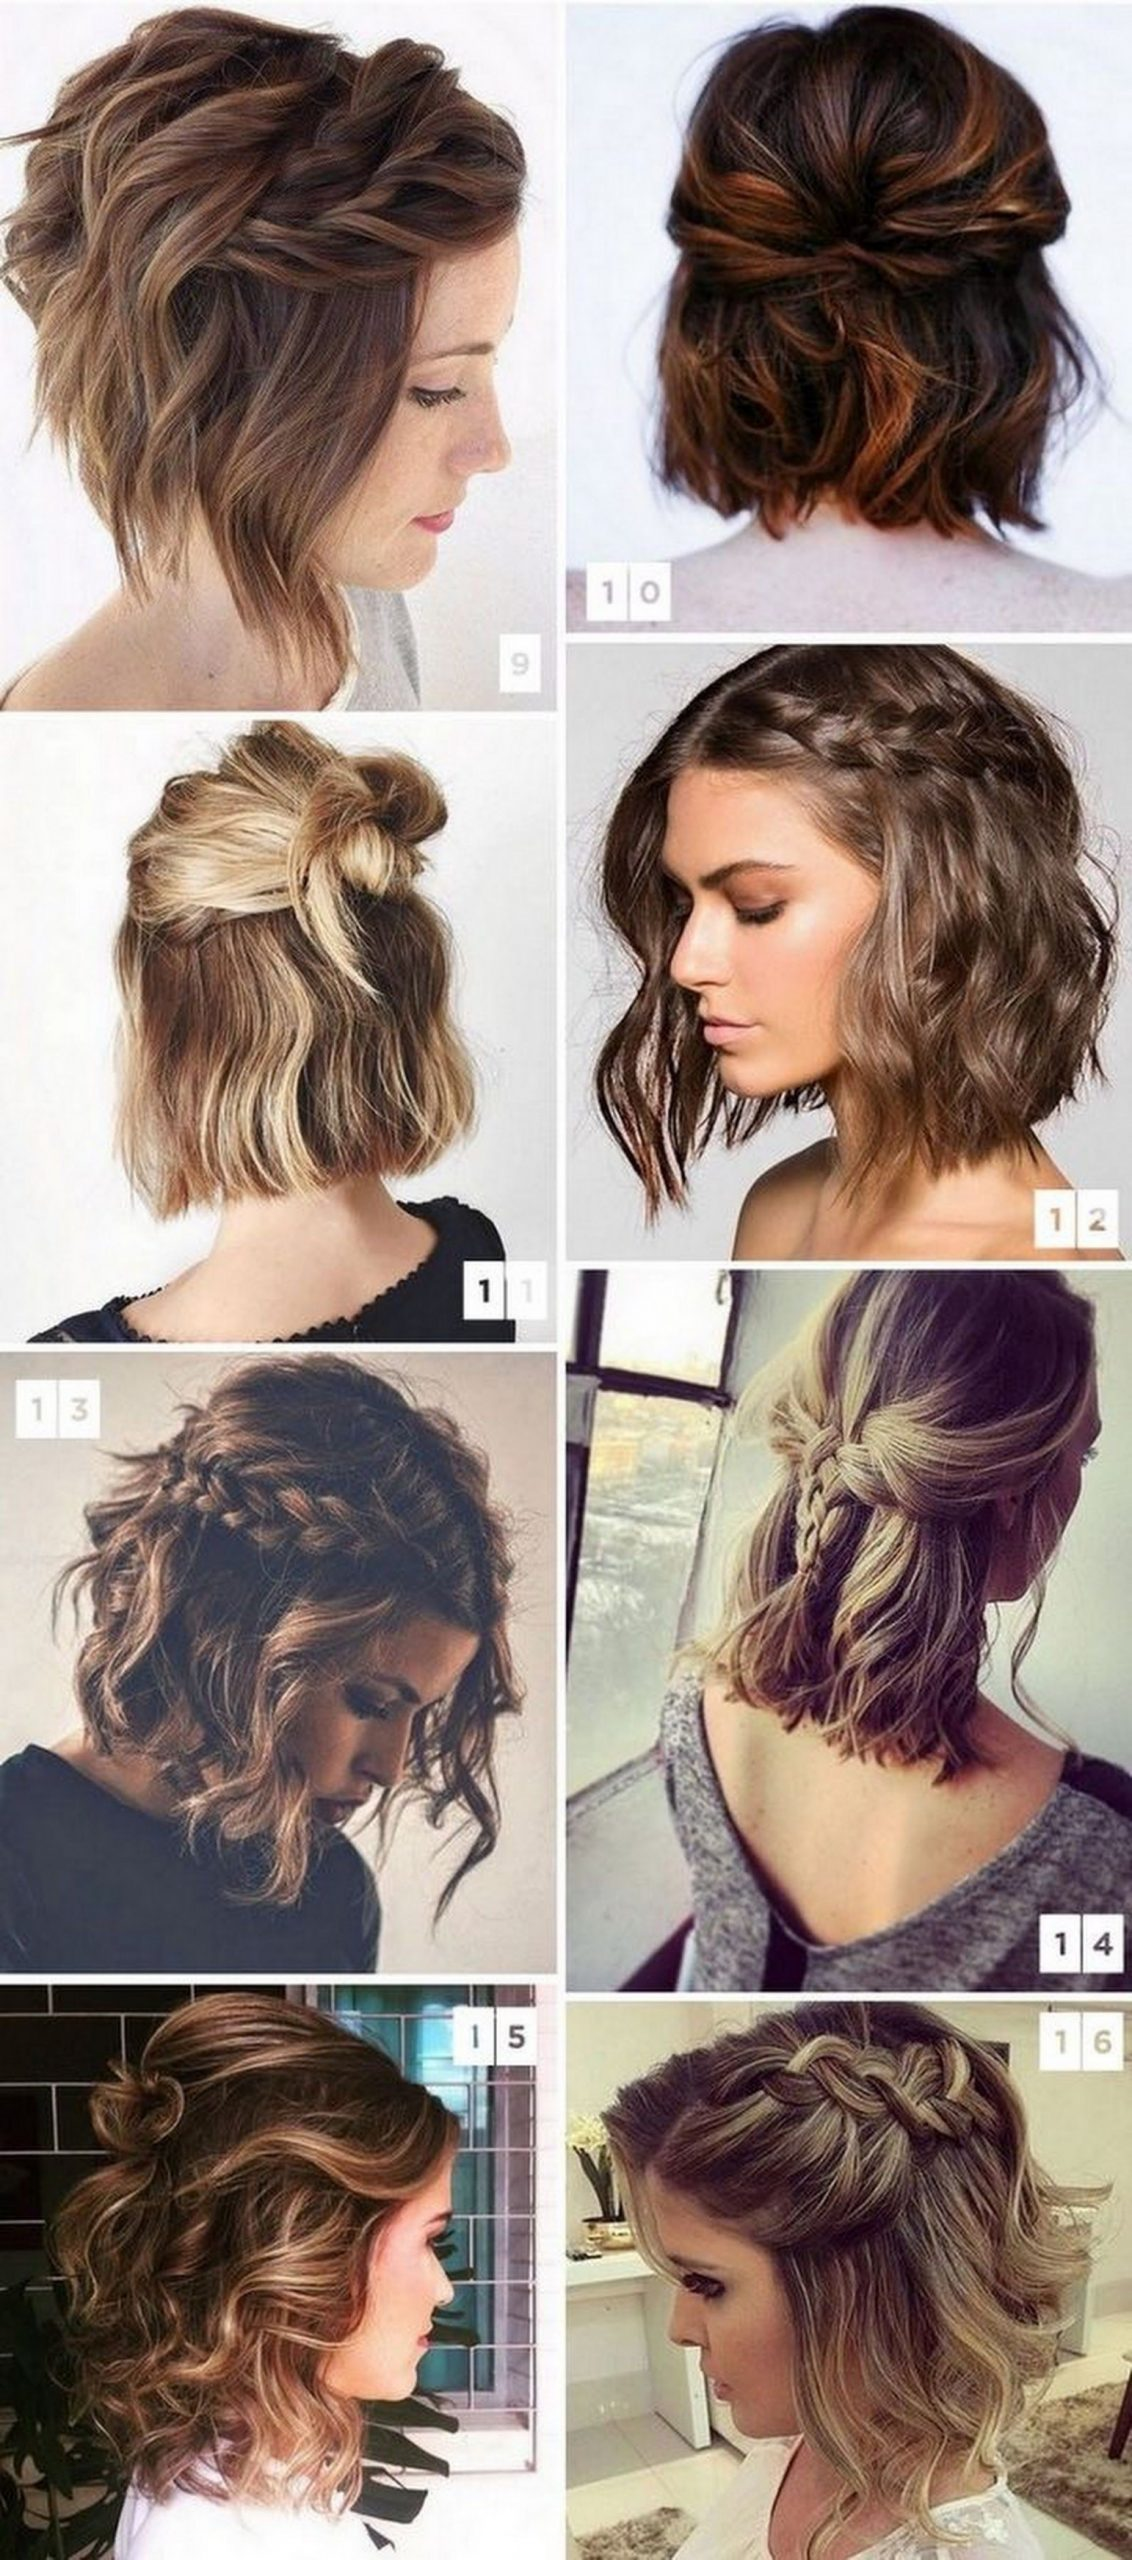 Sign In Short Hair Styles, Cute Hairstyles For Short Hair, Hair Pretty Hairstyles For Short Hair